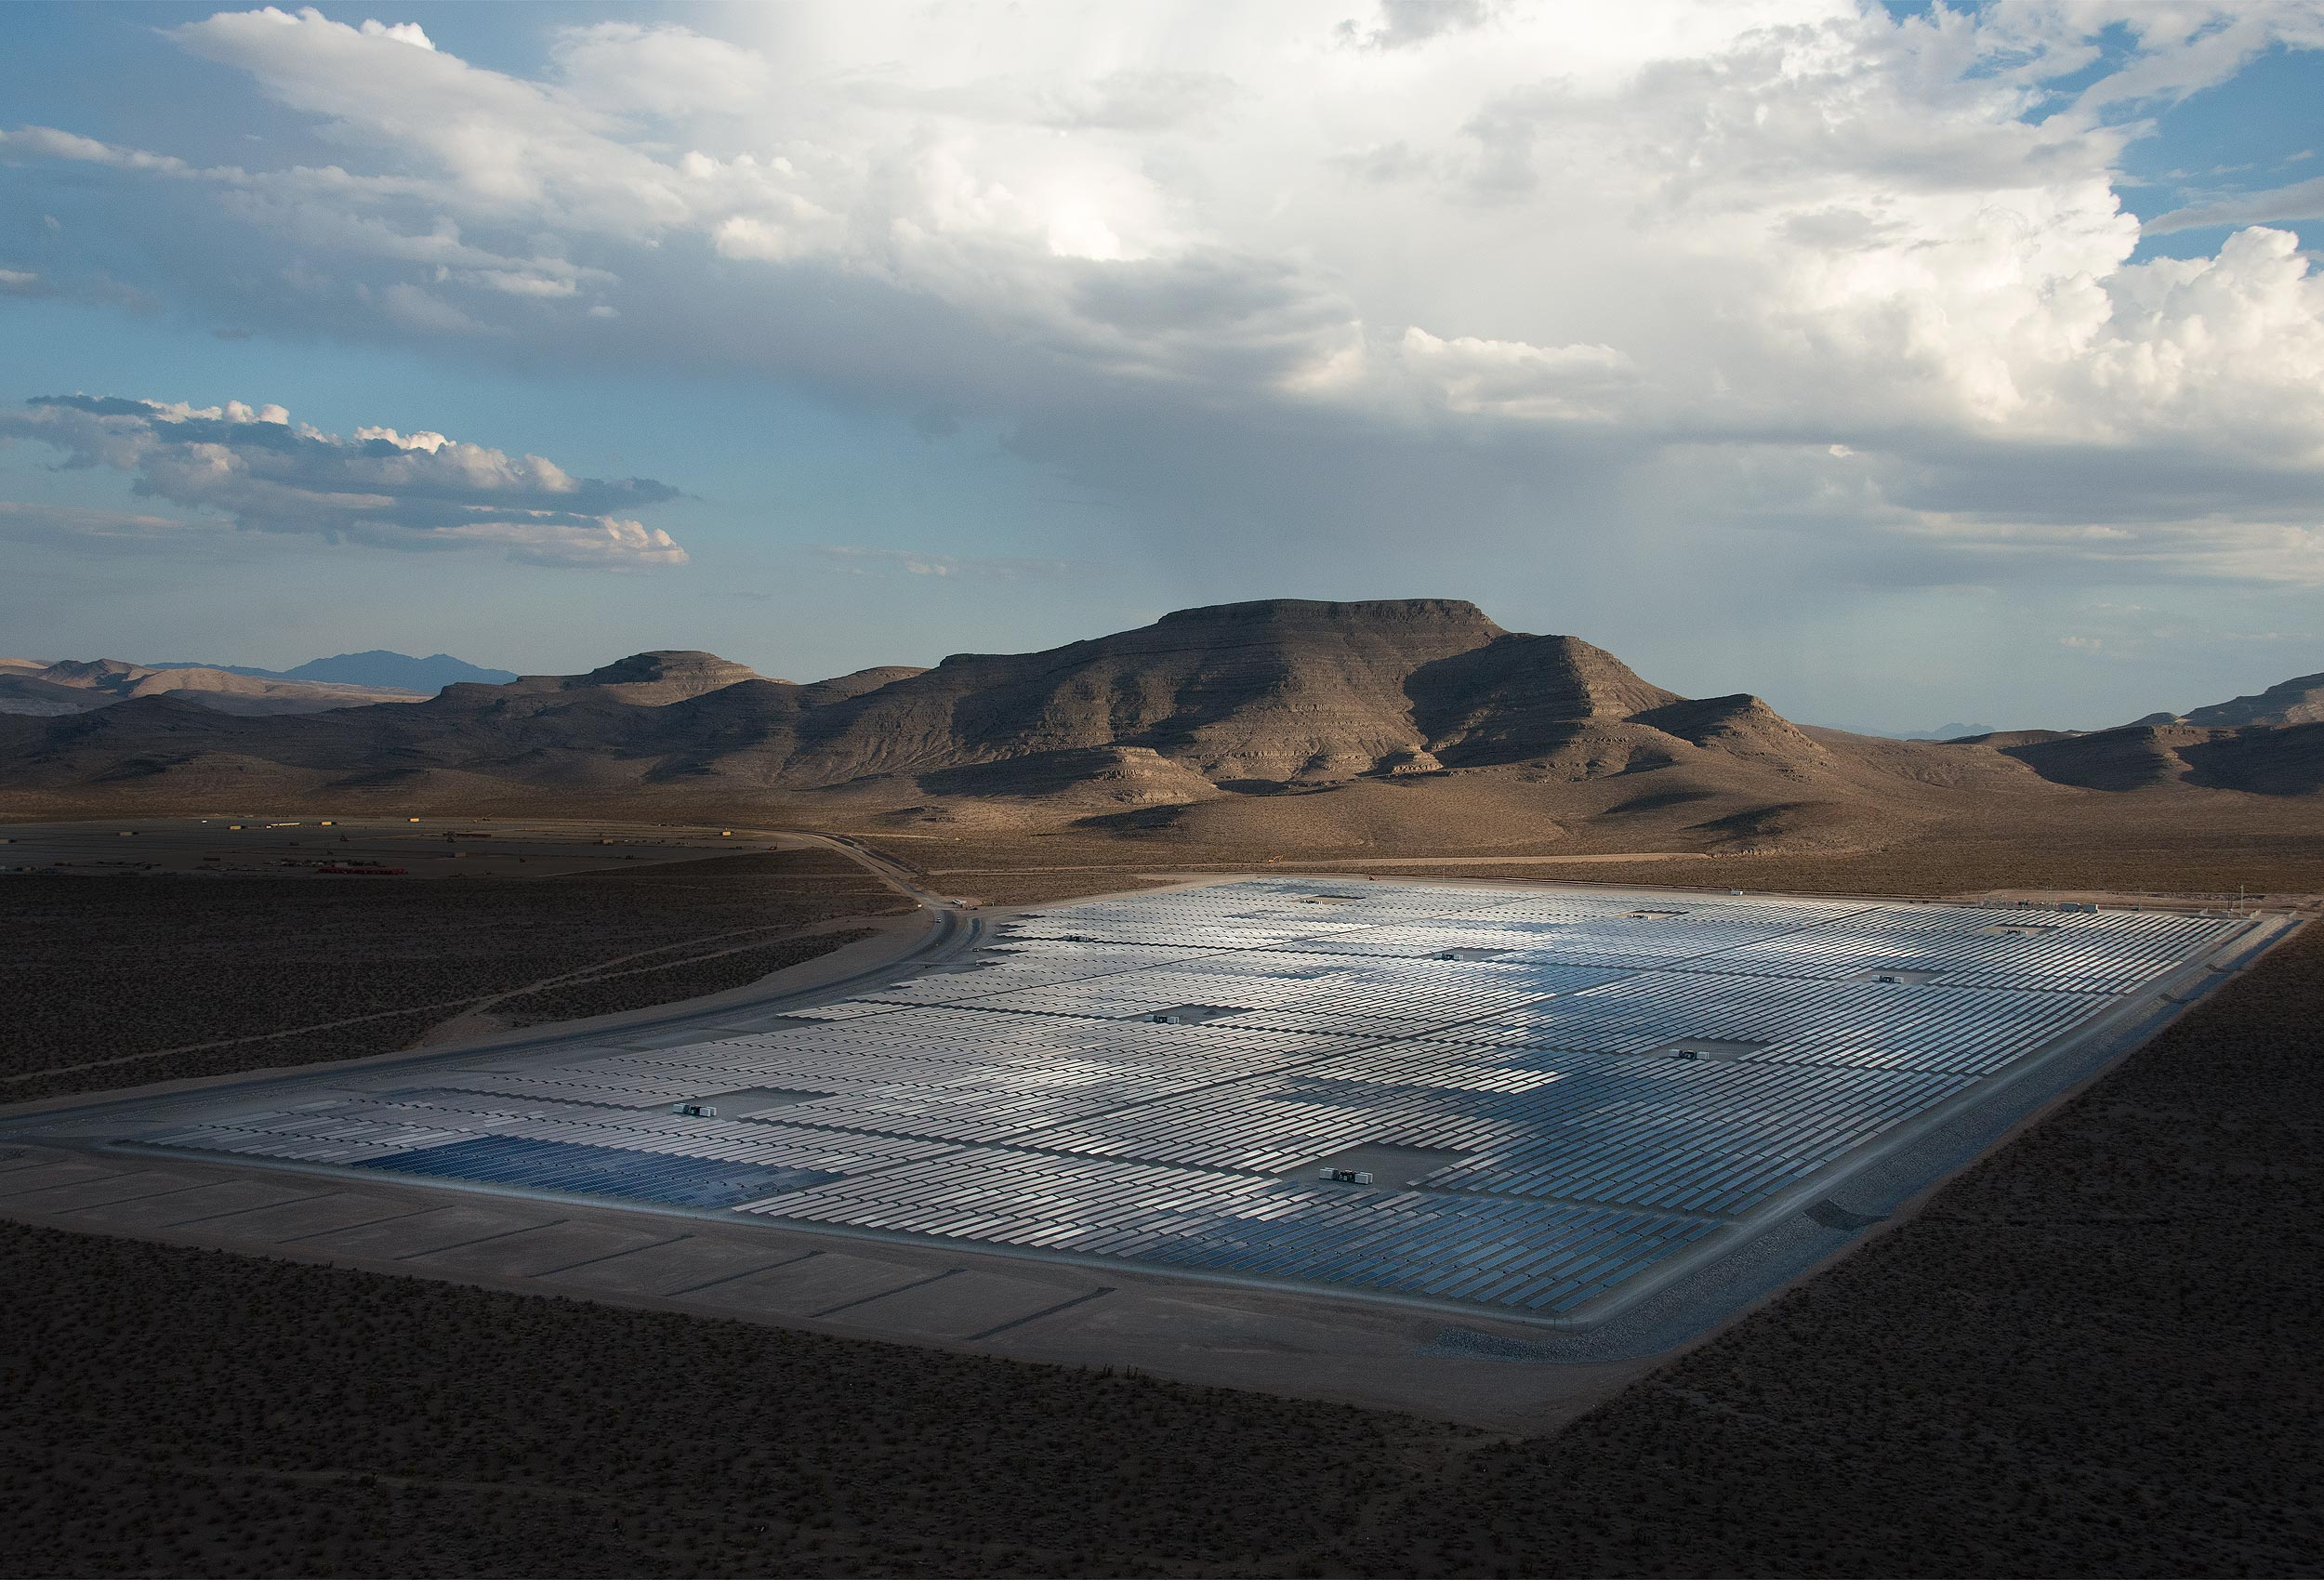 Aerial of solar farm by corporate industrial photographer Kristopher Grunert